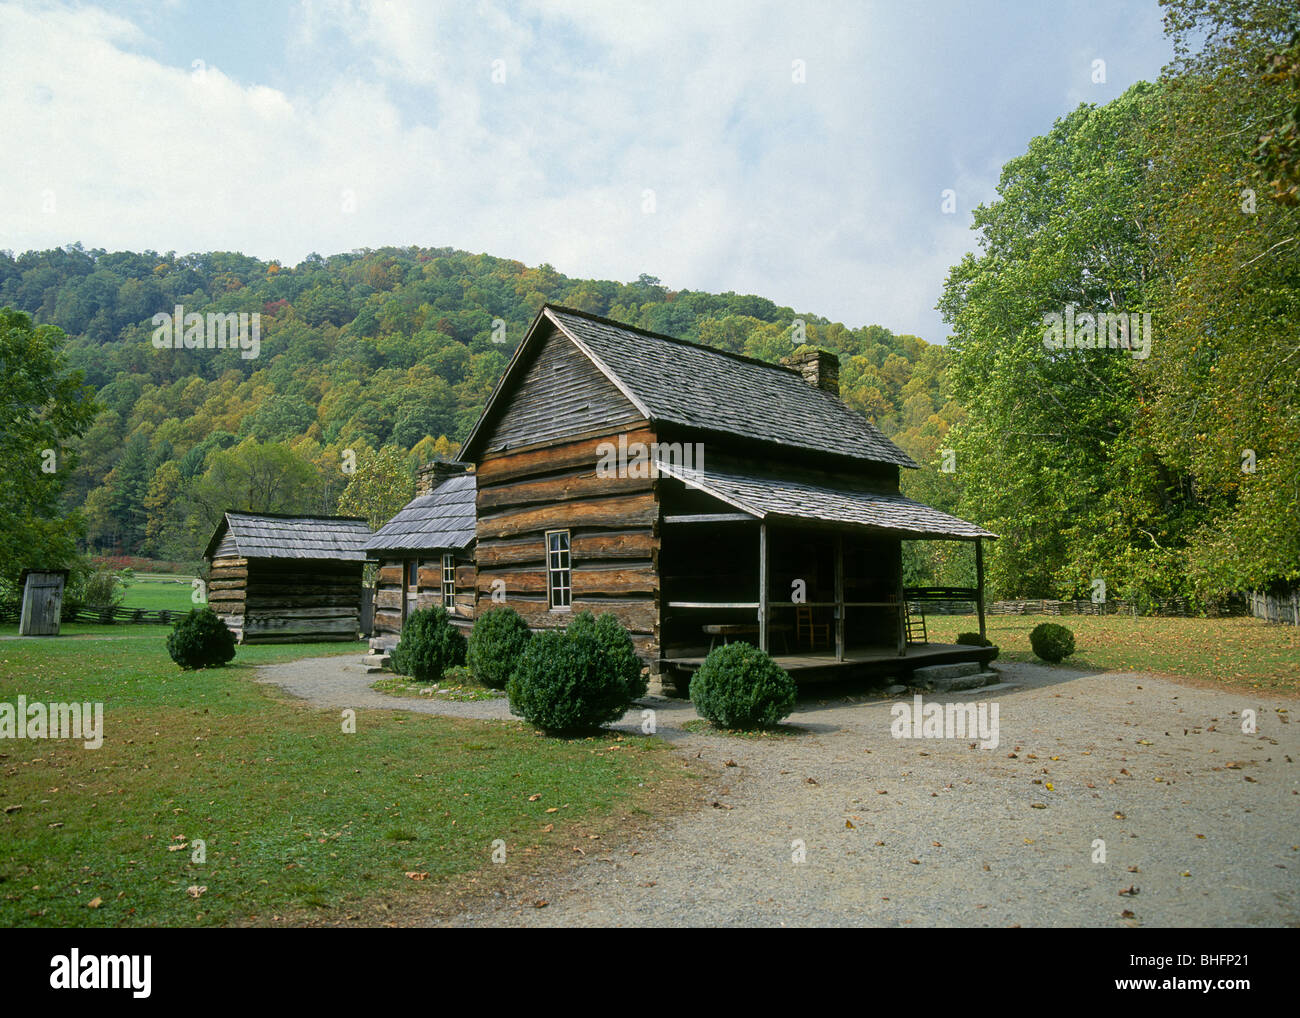 Log cabins for sale in north carolina - A Hand Hewn Log Cabin In The Hardwood Forest Of The Great Smokey Mountains National Park North Carolina